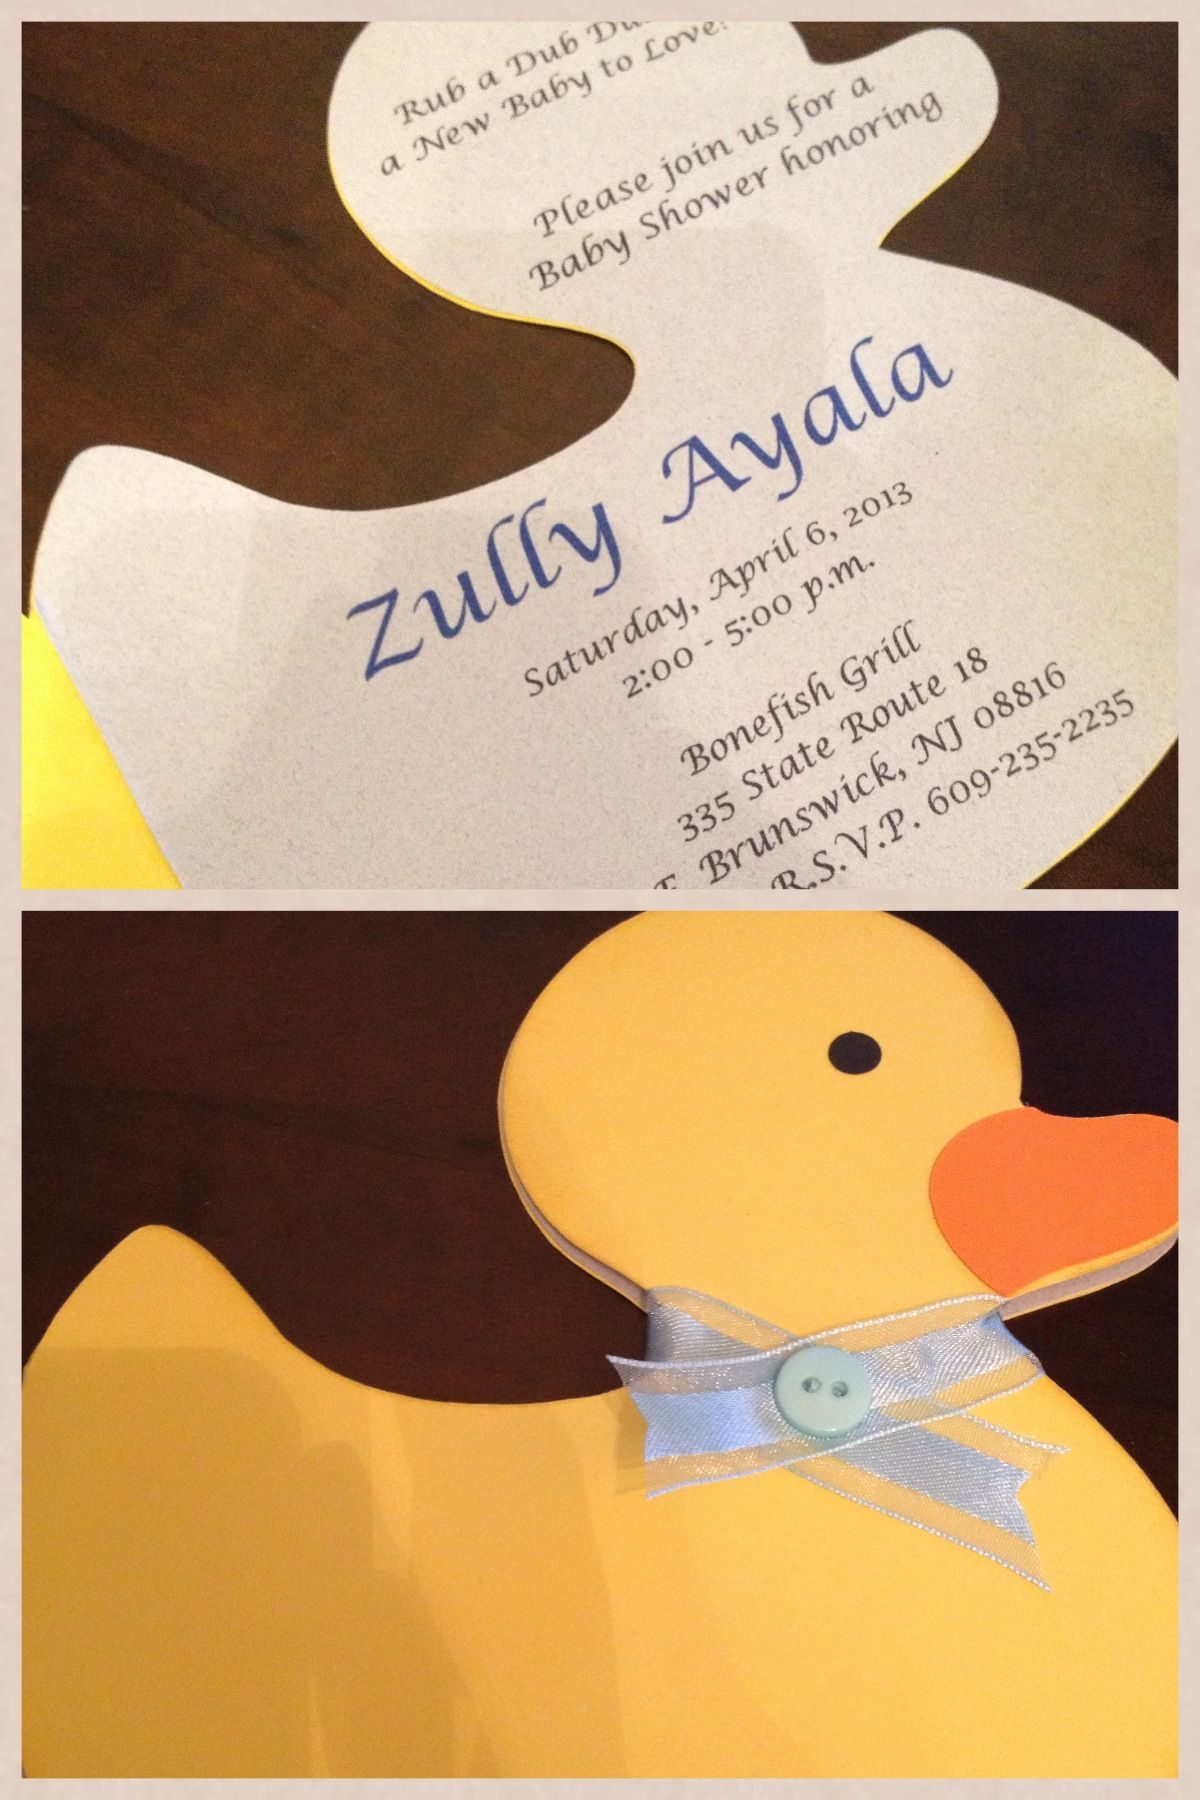 Duck baby shower invitation by Simply Fab & Chic